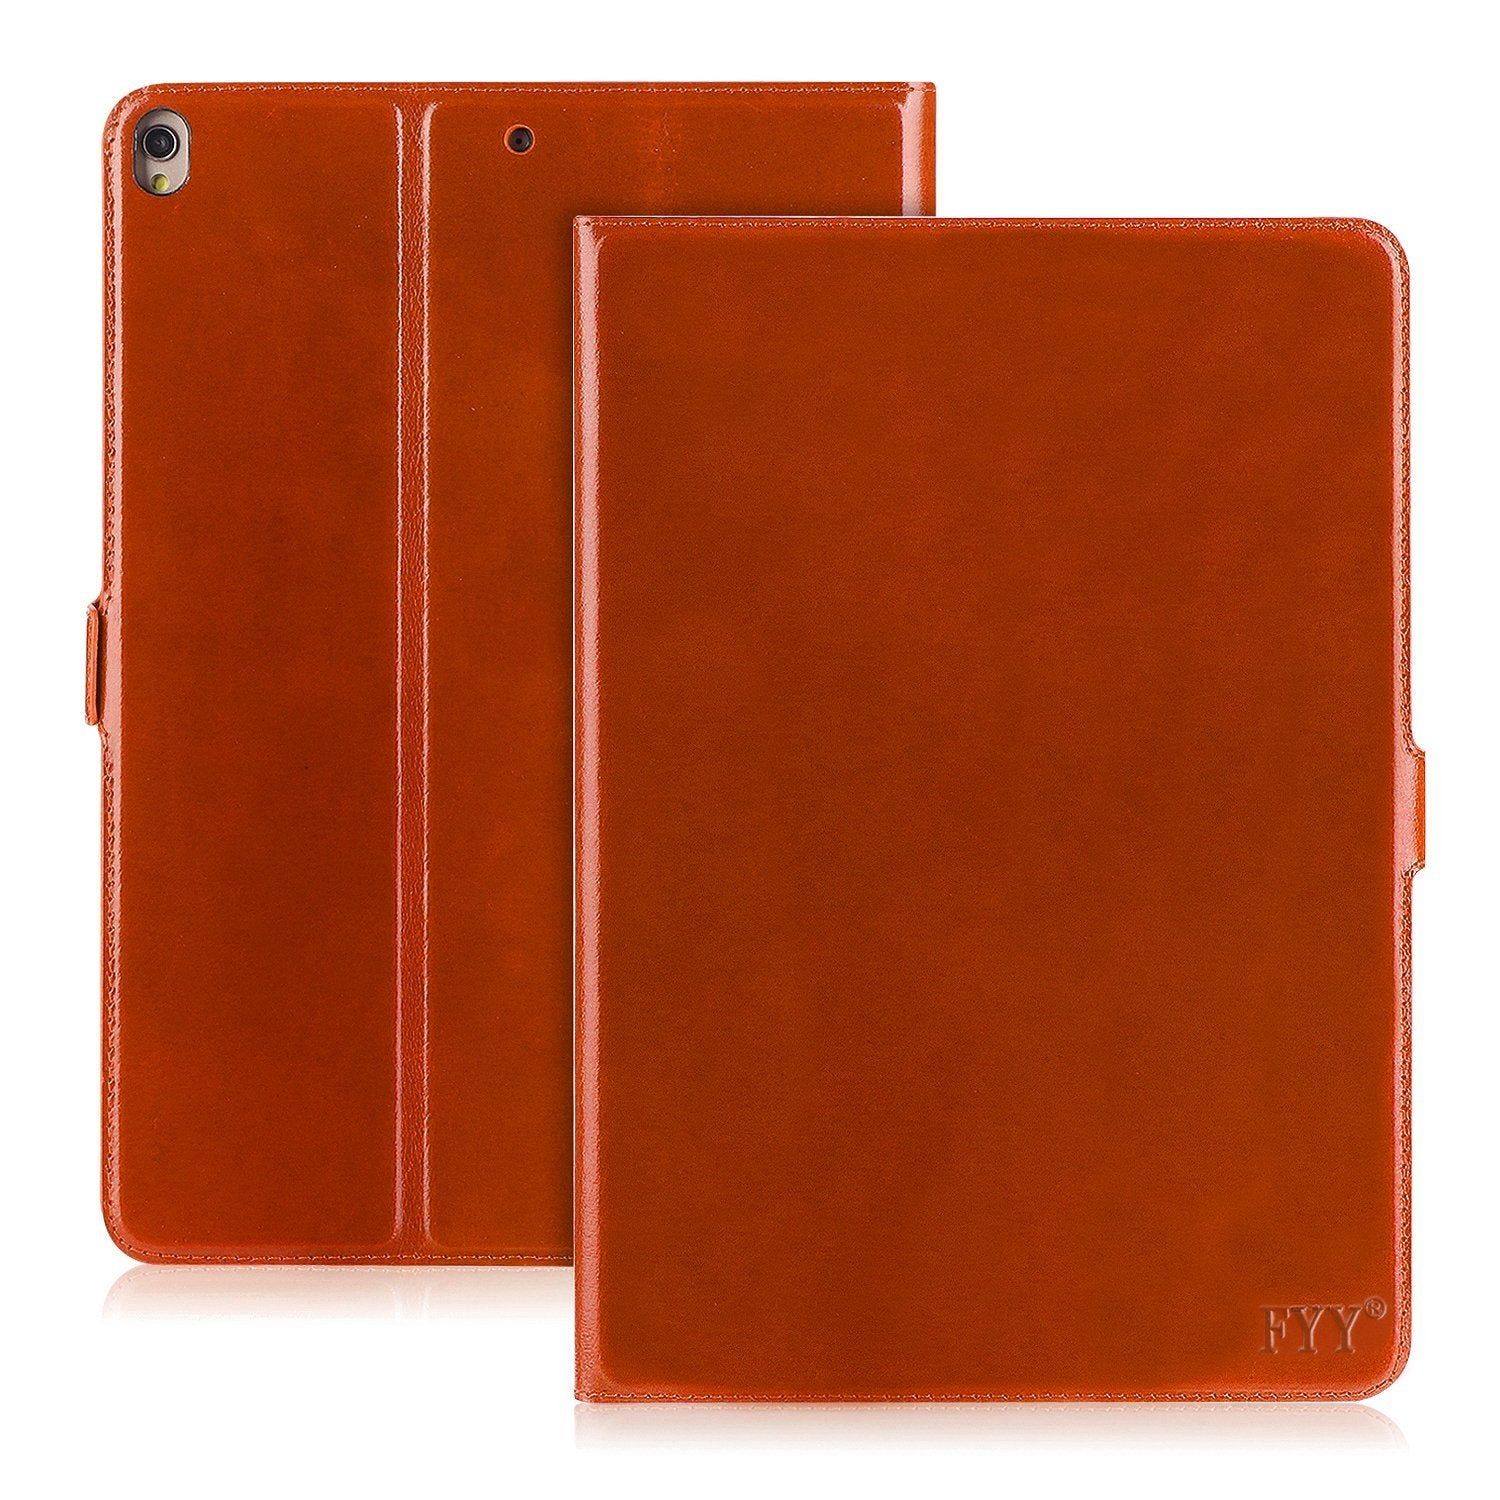 Genuine Leather Case for 2019 iPad Air 10.5/2017 iPad Pro 10.5""